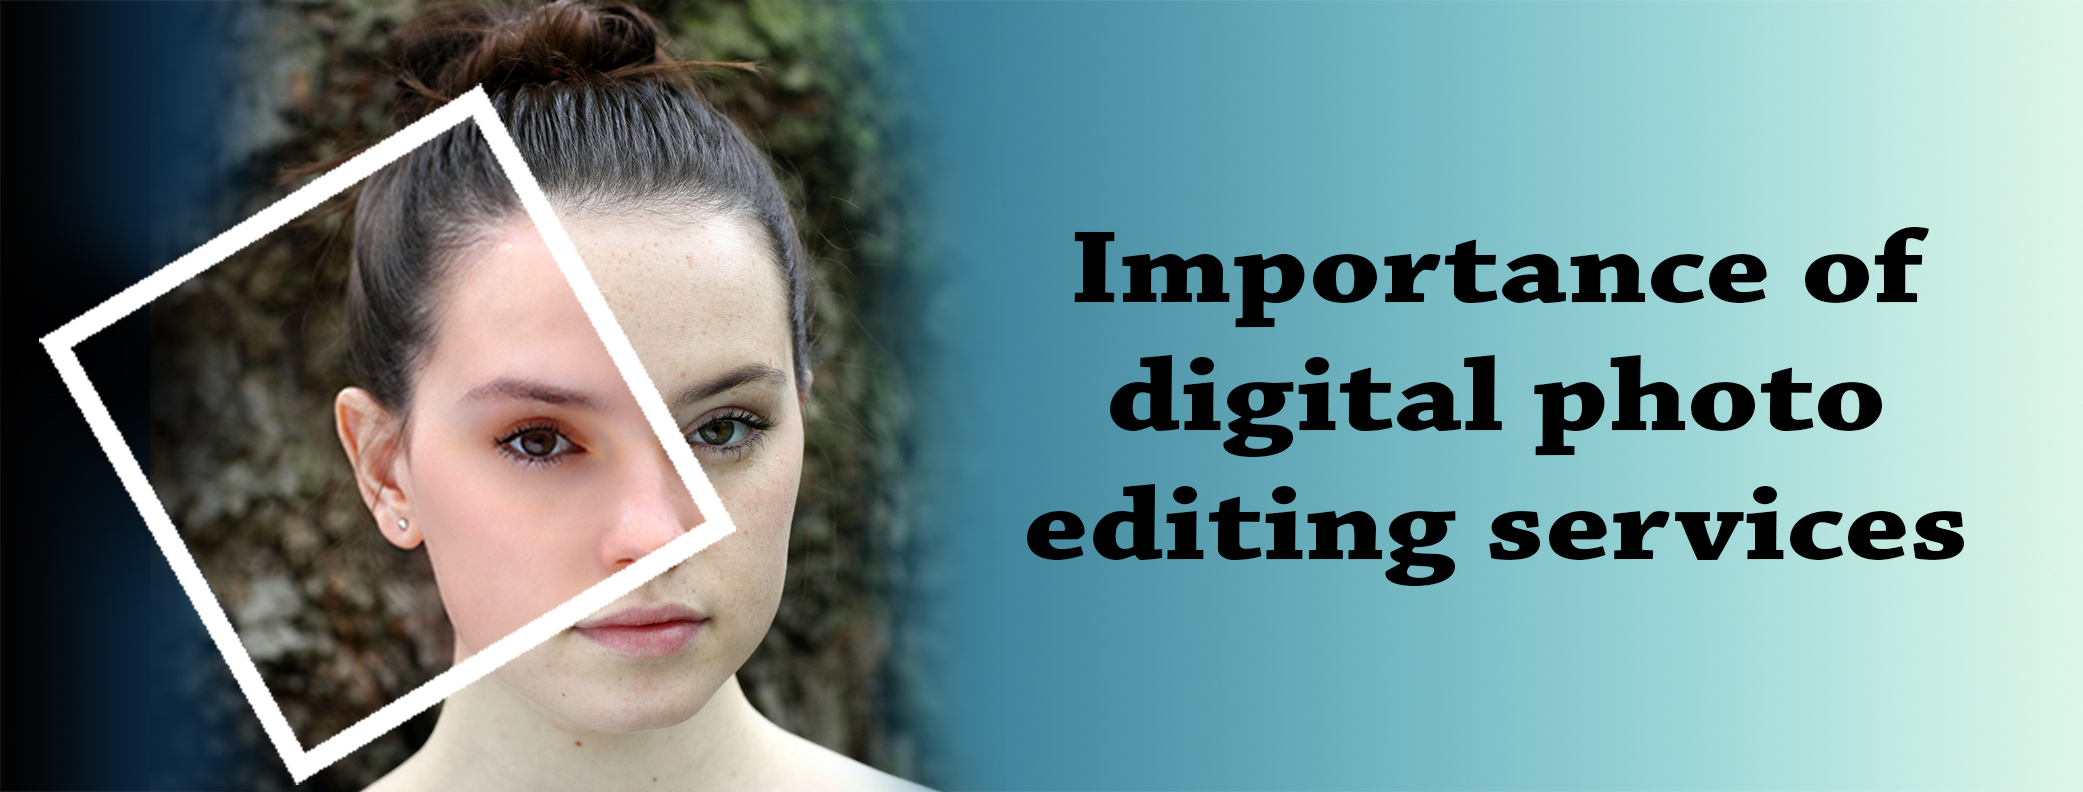 Importance of digital photo editing